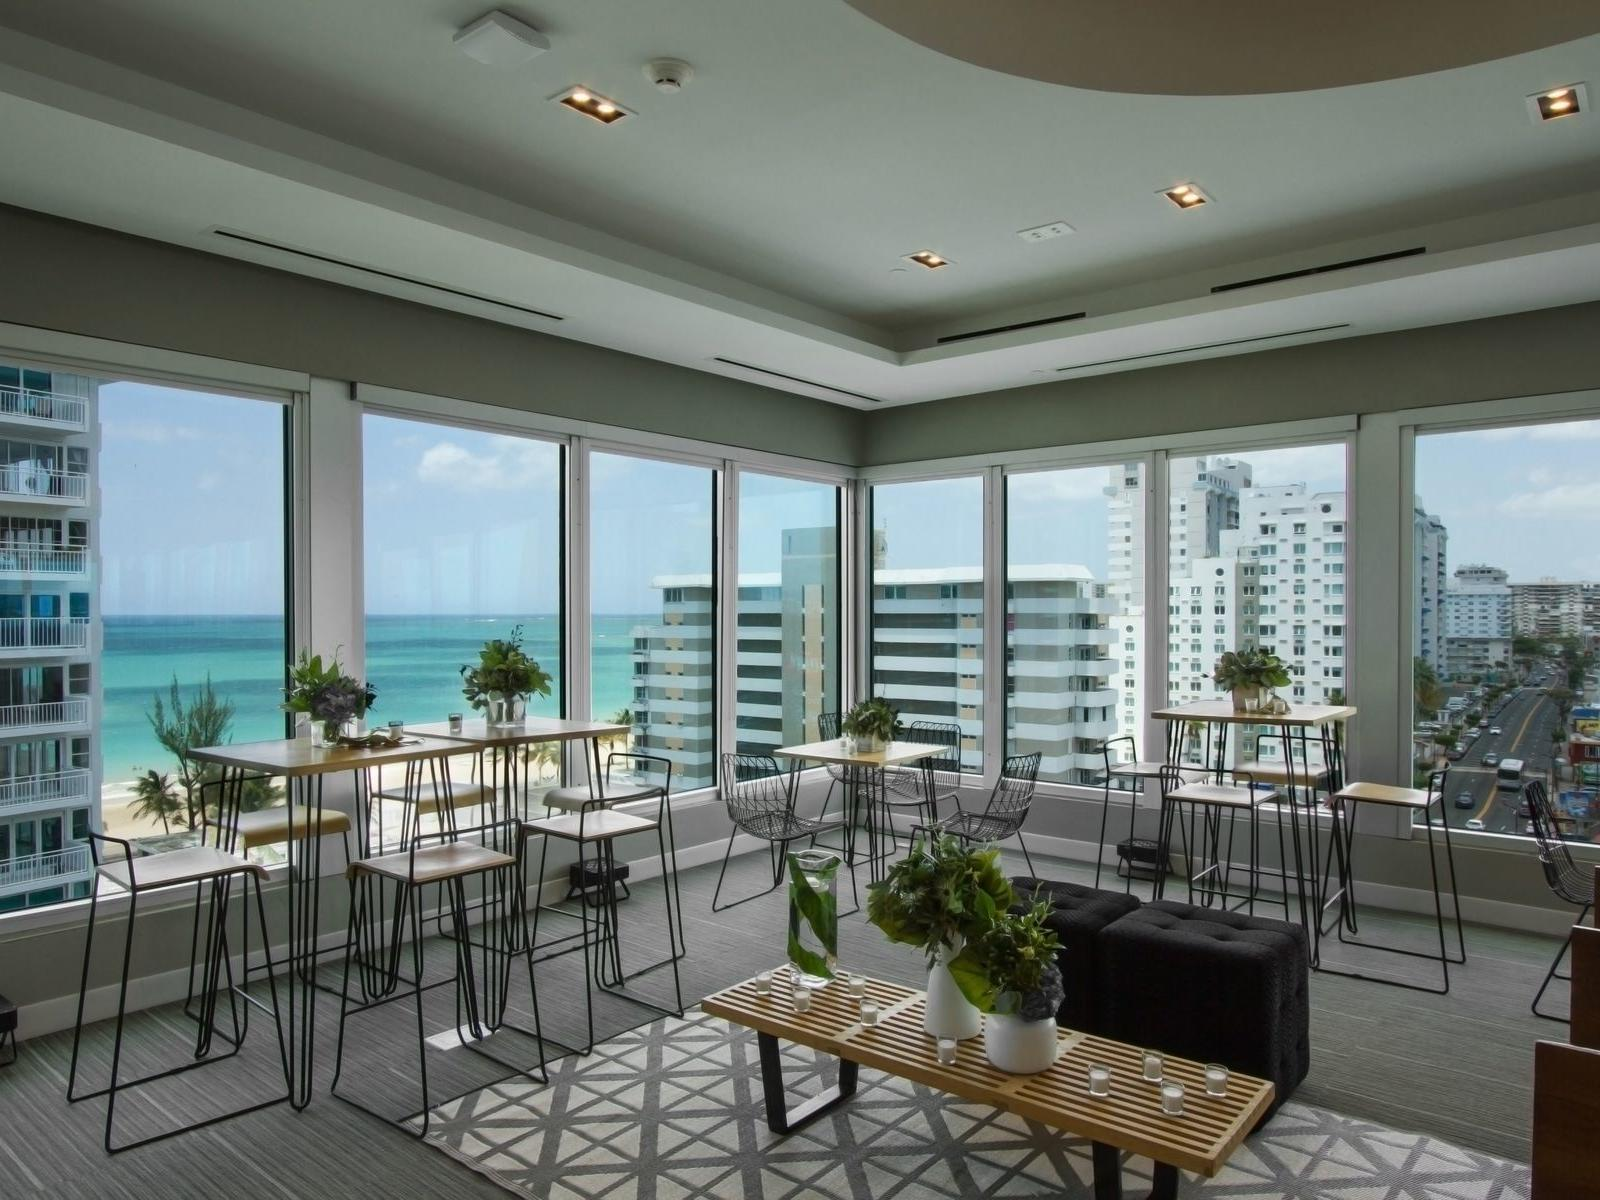 meeting room with beach view